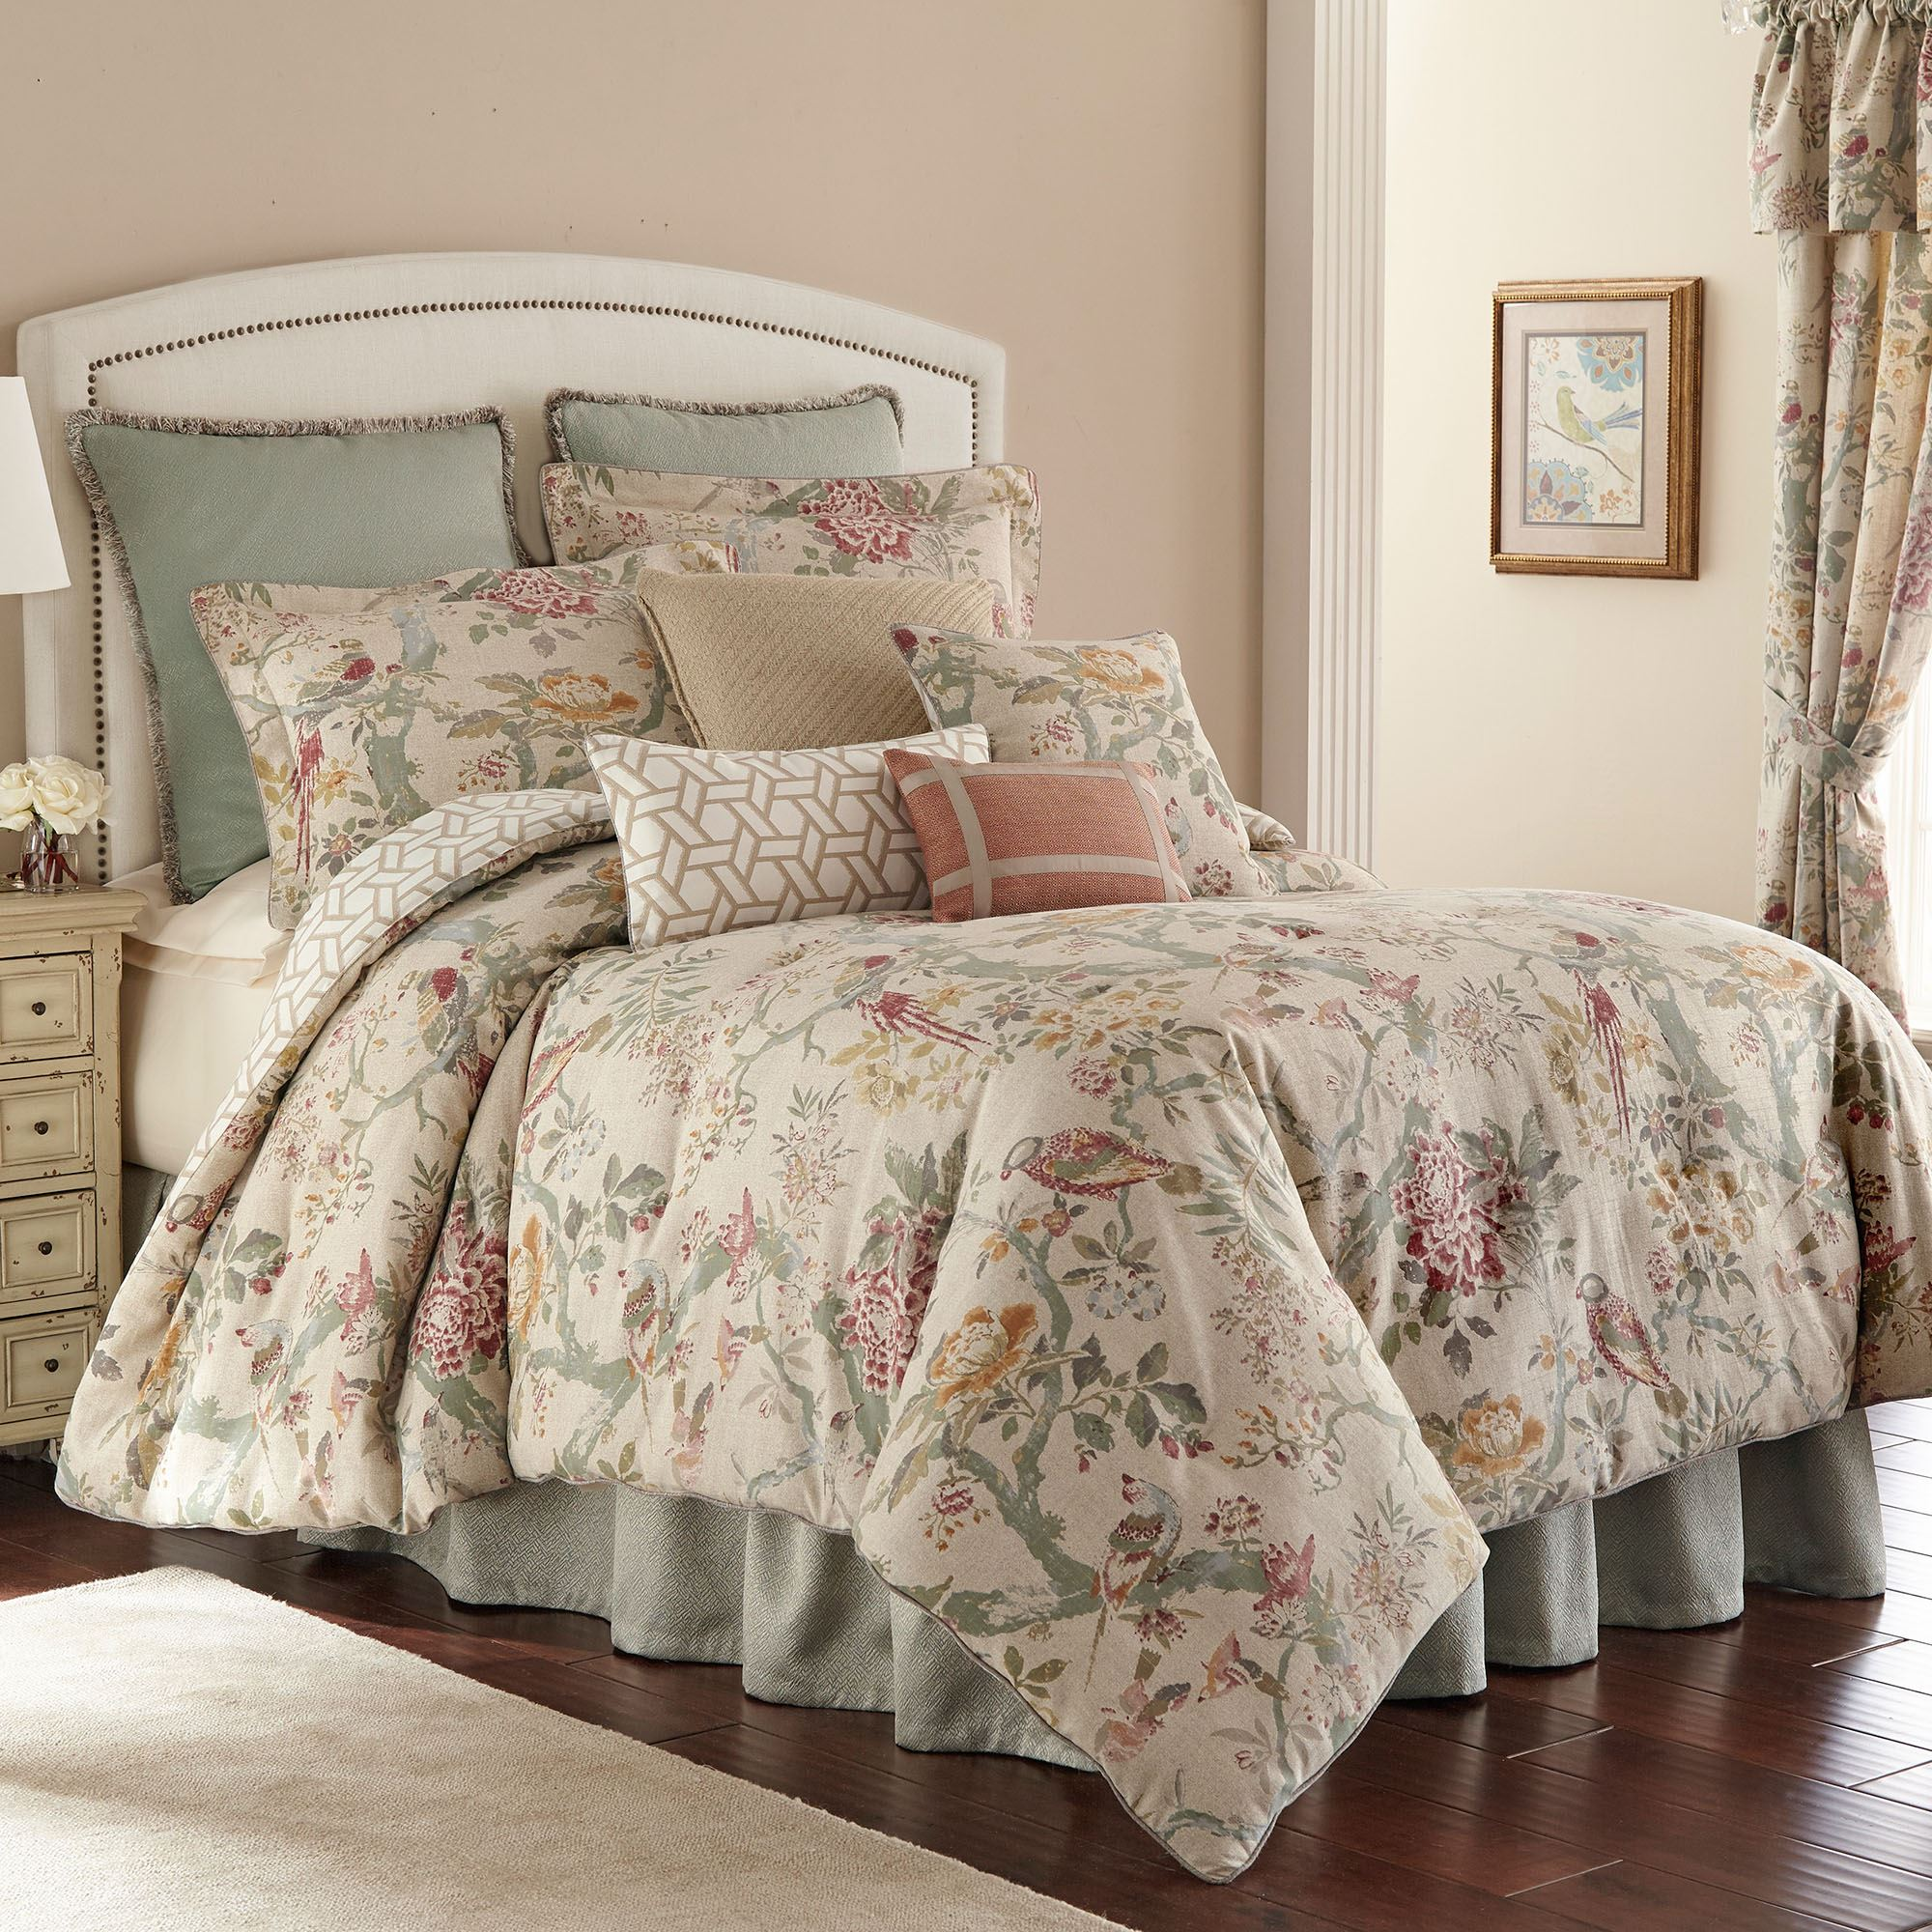 mint decor home on rose tan wonderful comforter king bedspreads green design set modern bedding colored ideas bedroom colo coral salmon bedspread in pattern twin queen coverlet